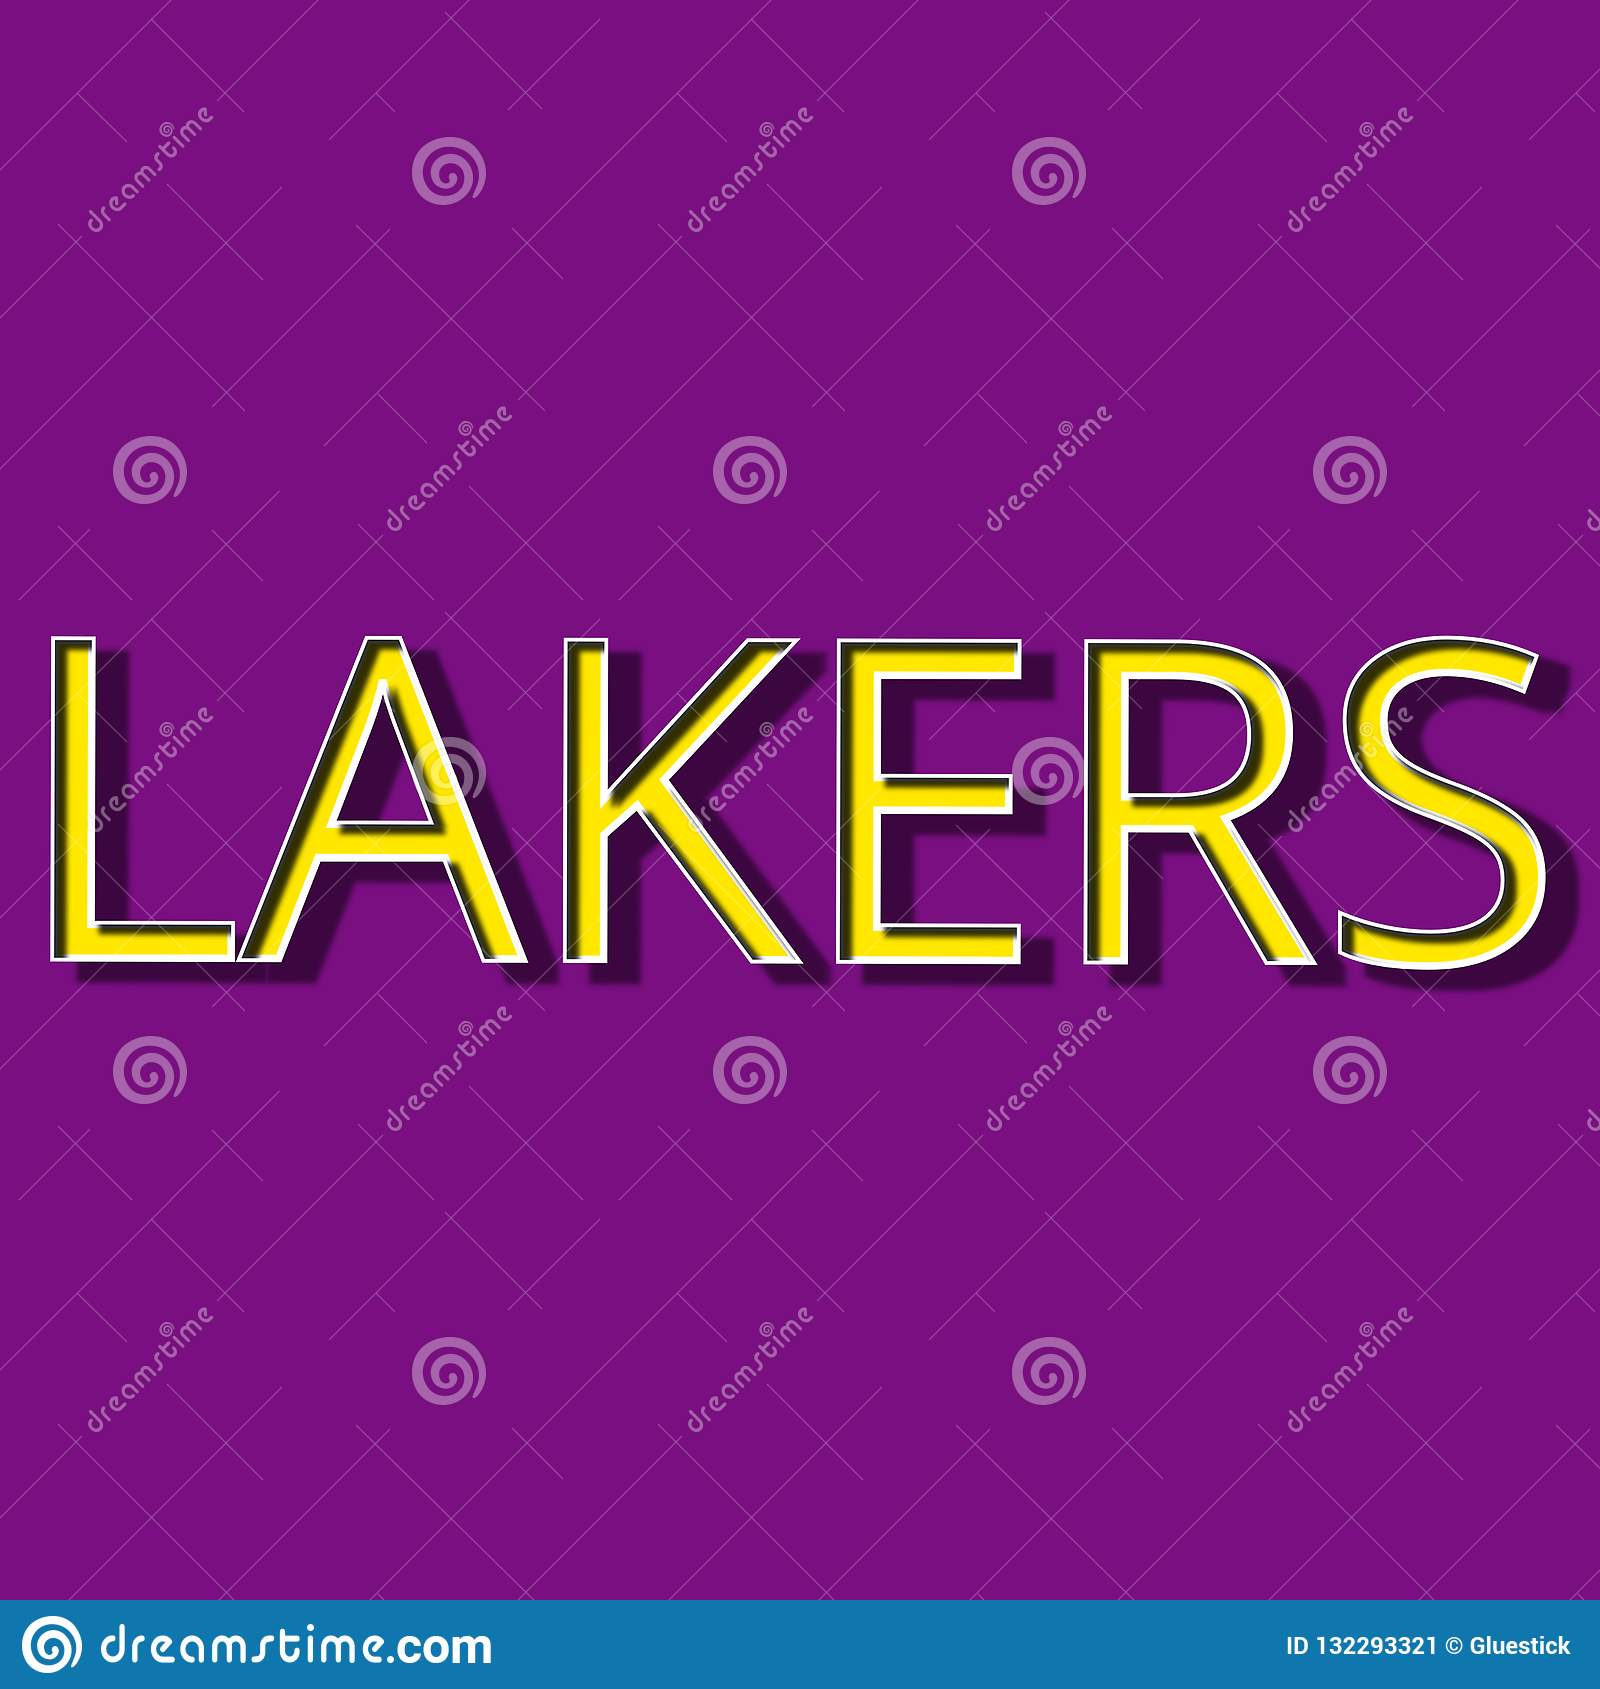 Los Angeles Lakers Editorial Photo Illustration Of Backgrounds 132293321,Digital Marketing Website Designs